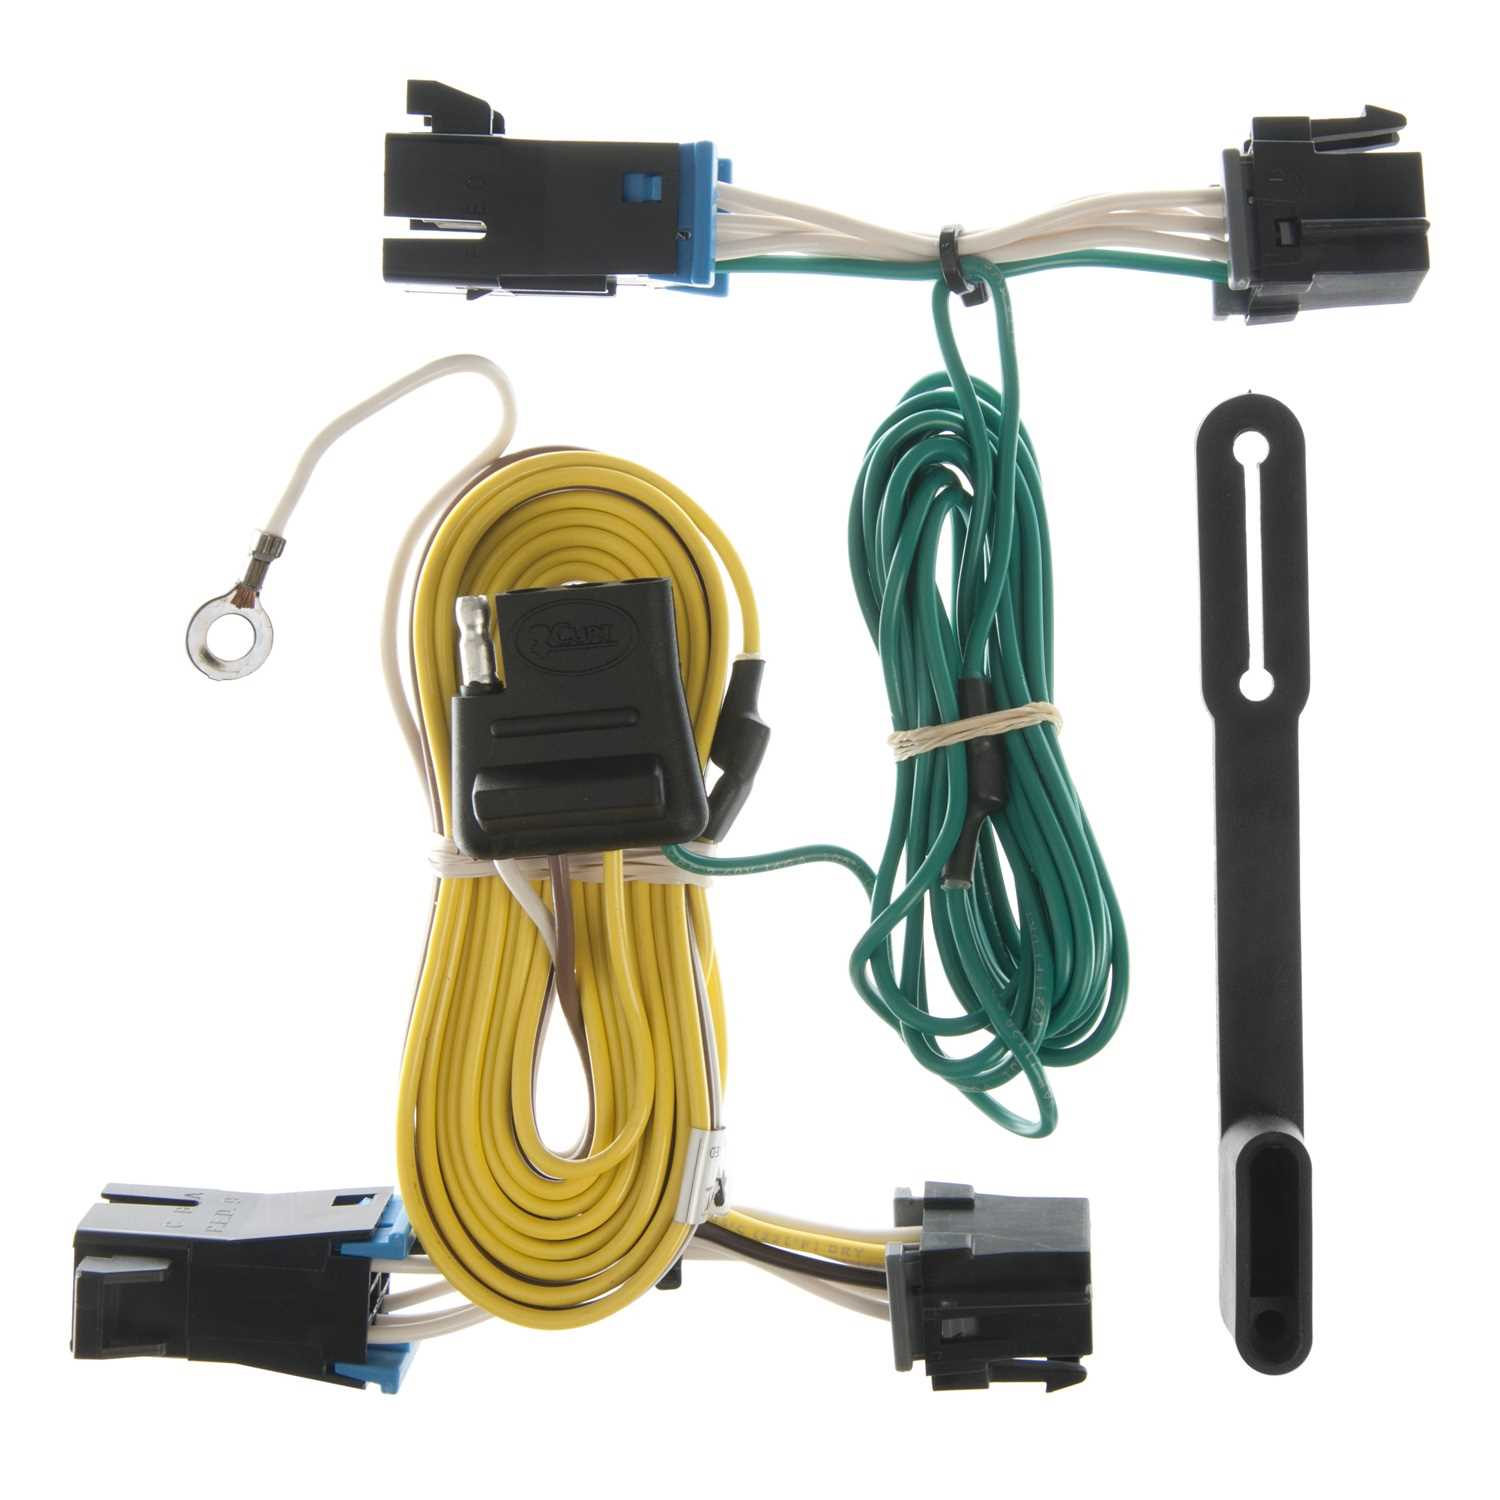 Custom Wiring Harness Johns Trim Shop Curt Tconnector Vehicle For Factory Tow Package 5 55352